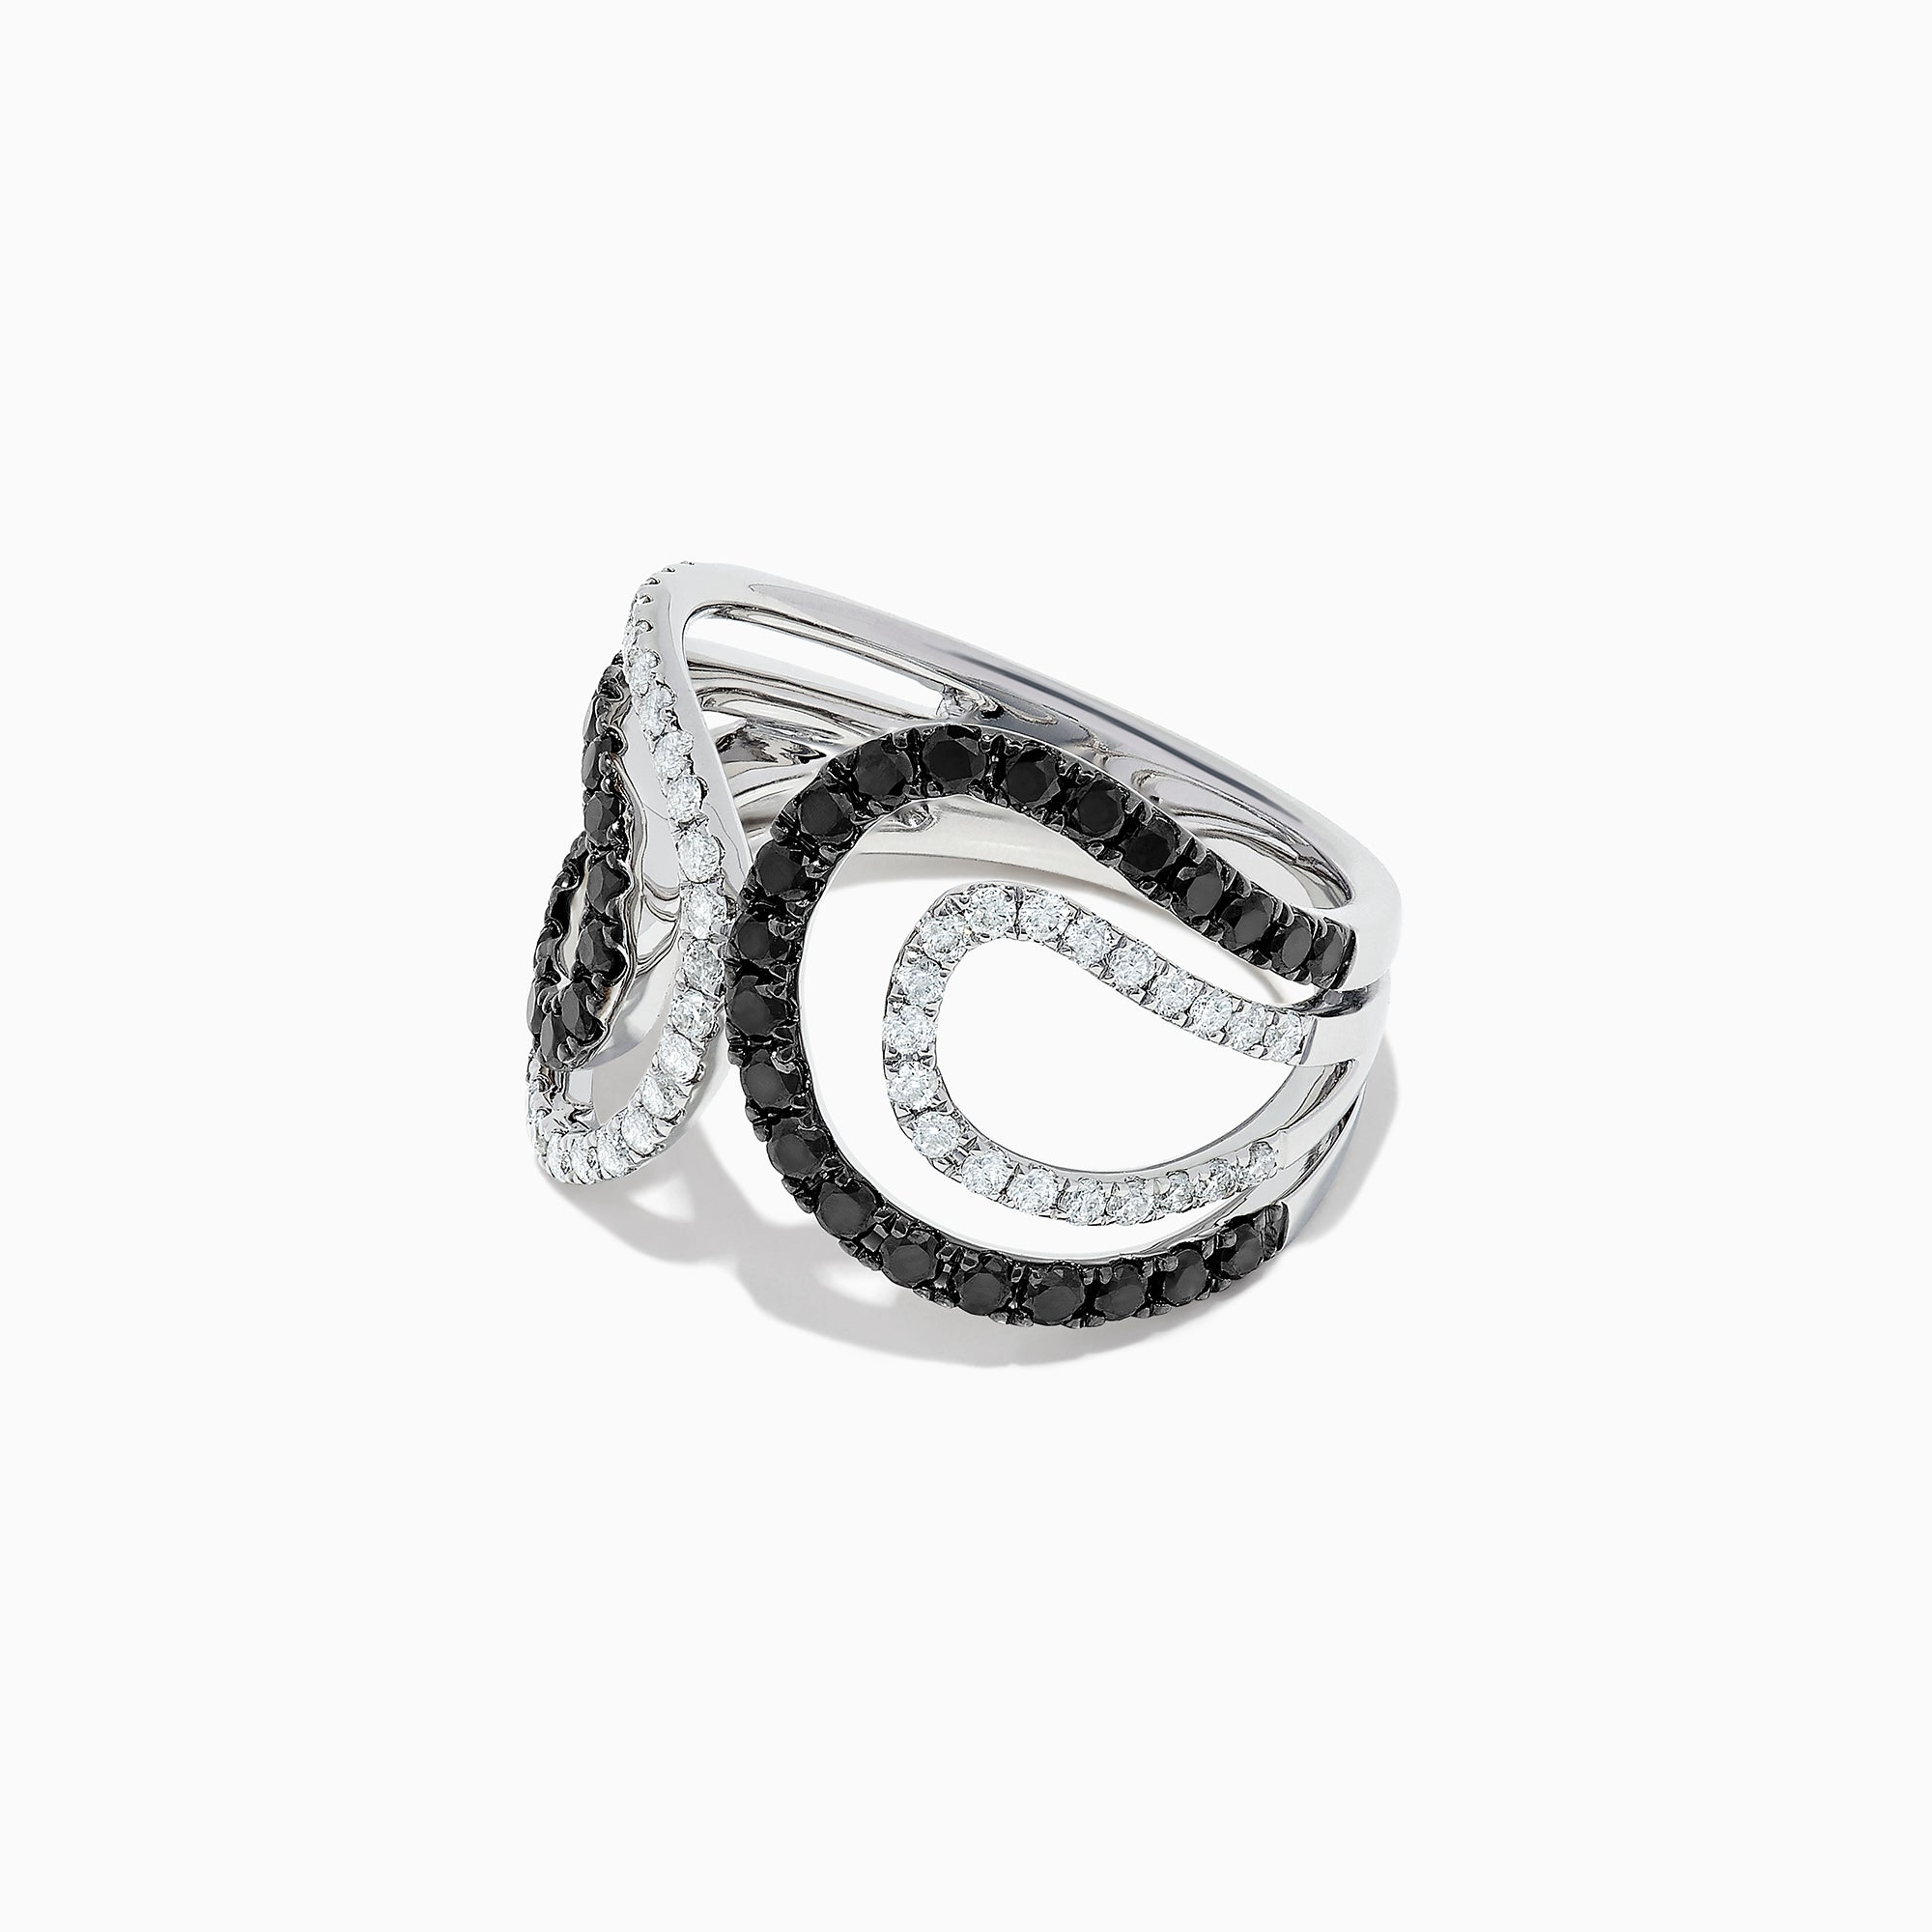 Effy 14K White Gold Black and White Diamond Ring, 1.08 TCW